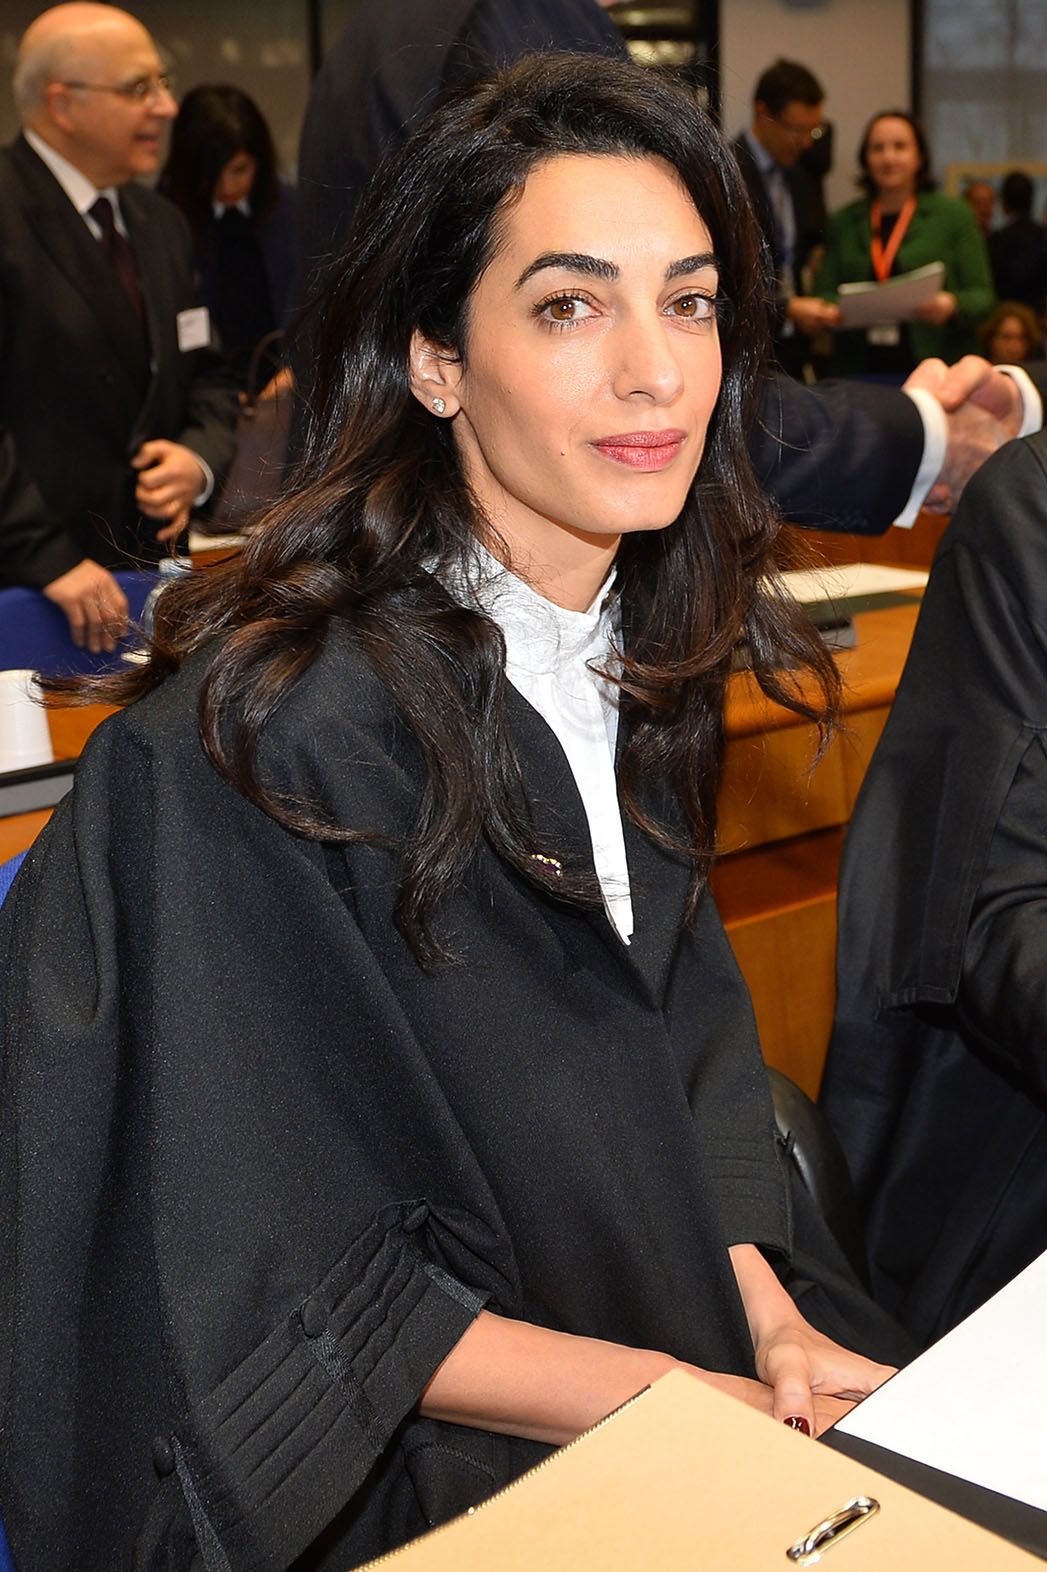 Amal Clooney DO NOT BLAST - P 2015